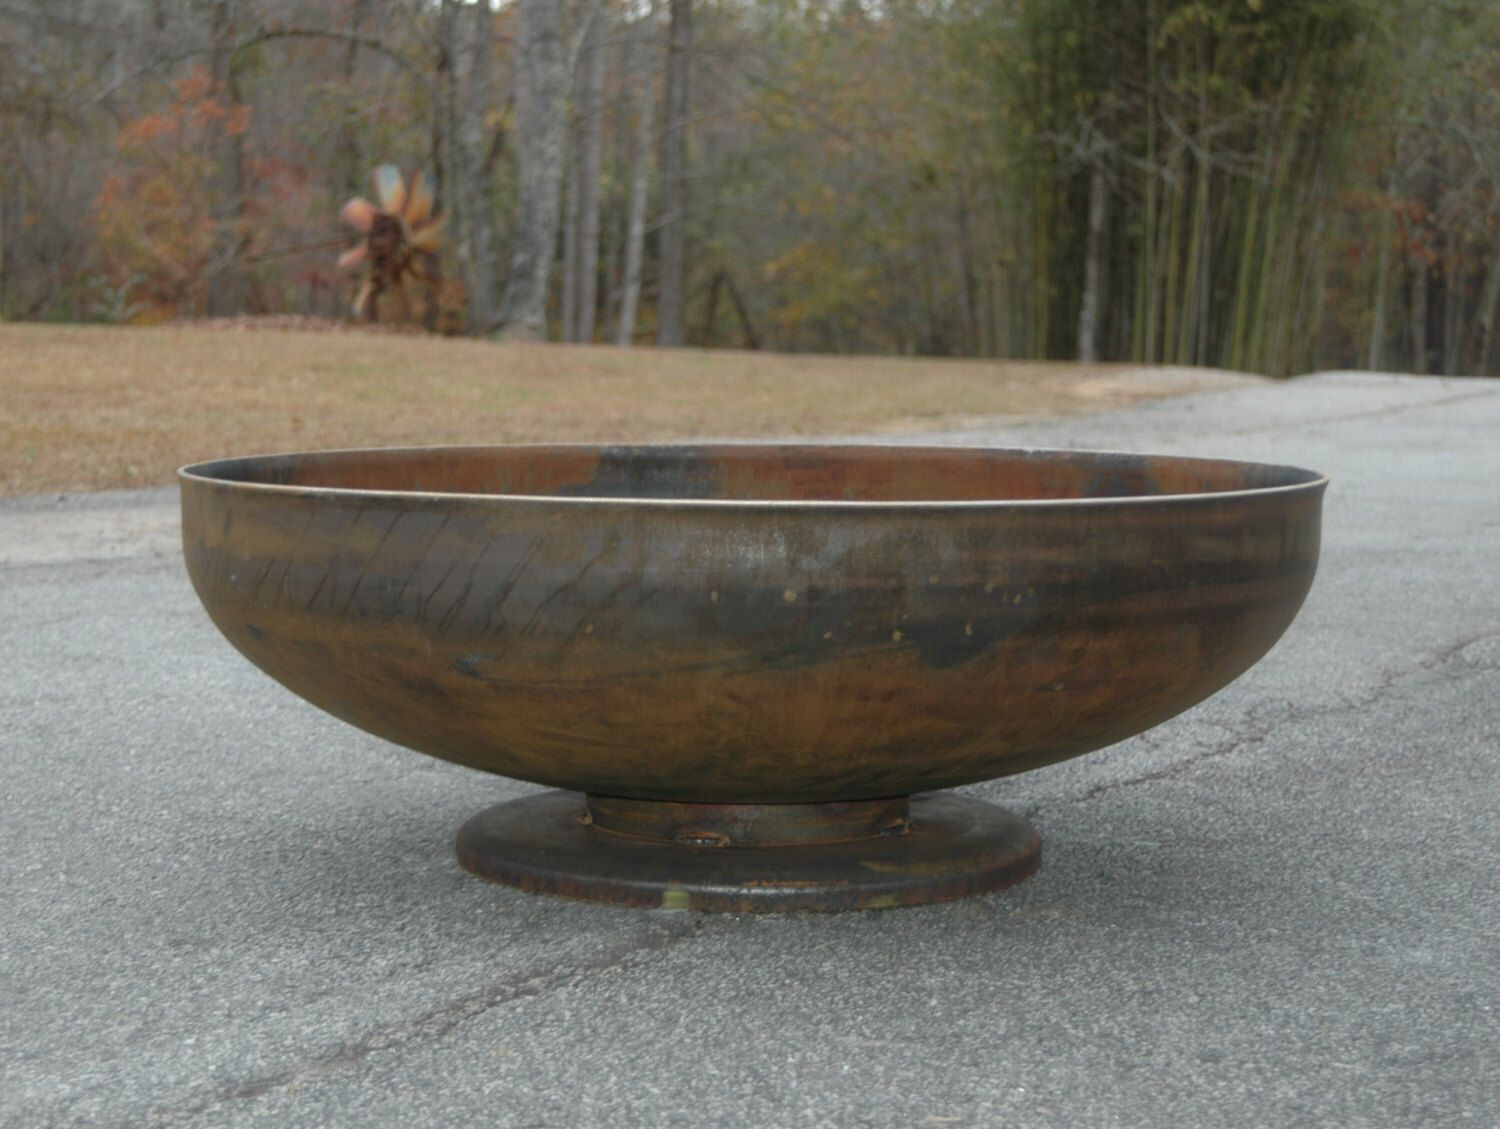 Fire Pit 42 inch Pedestal Base - Industrial Duty - Unique Base - Backyard Fire Pits - Durable Fire Pit - Heavy Gauge Metal Fire Pits Atlanta by Firepitsatlanta on Etsy https://www.etsy.com/listing/245502348/fire-pit-42-inch-pedestal-base